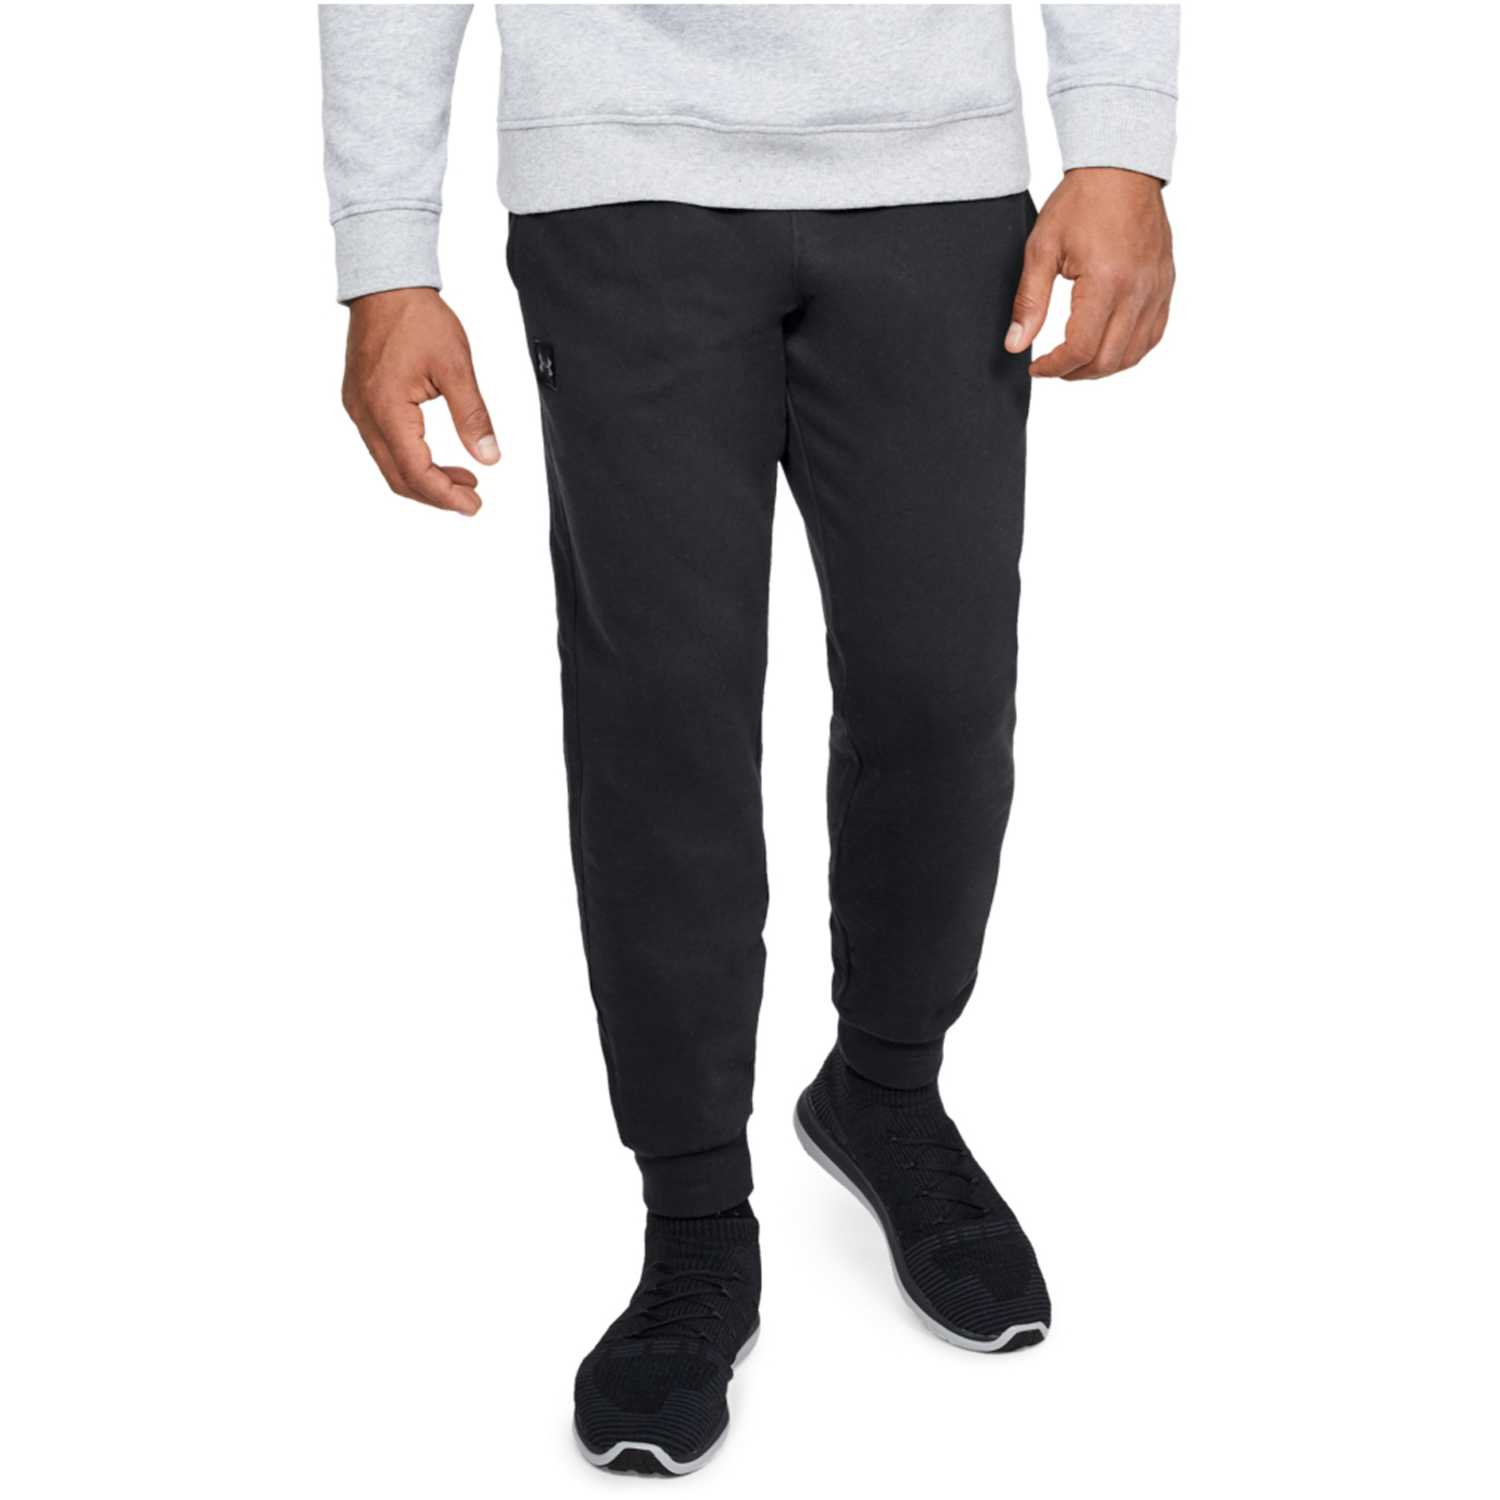 Under Armour rival fleece jogger-blk Navy Pantalones Deportivos